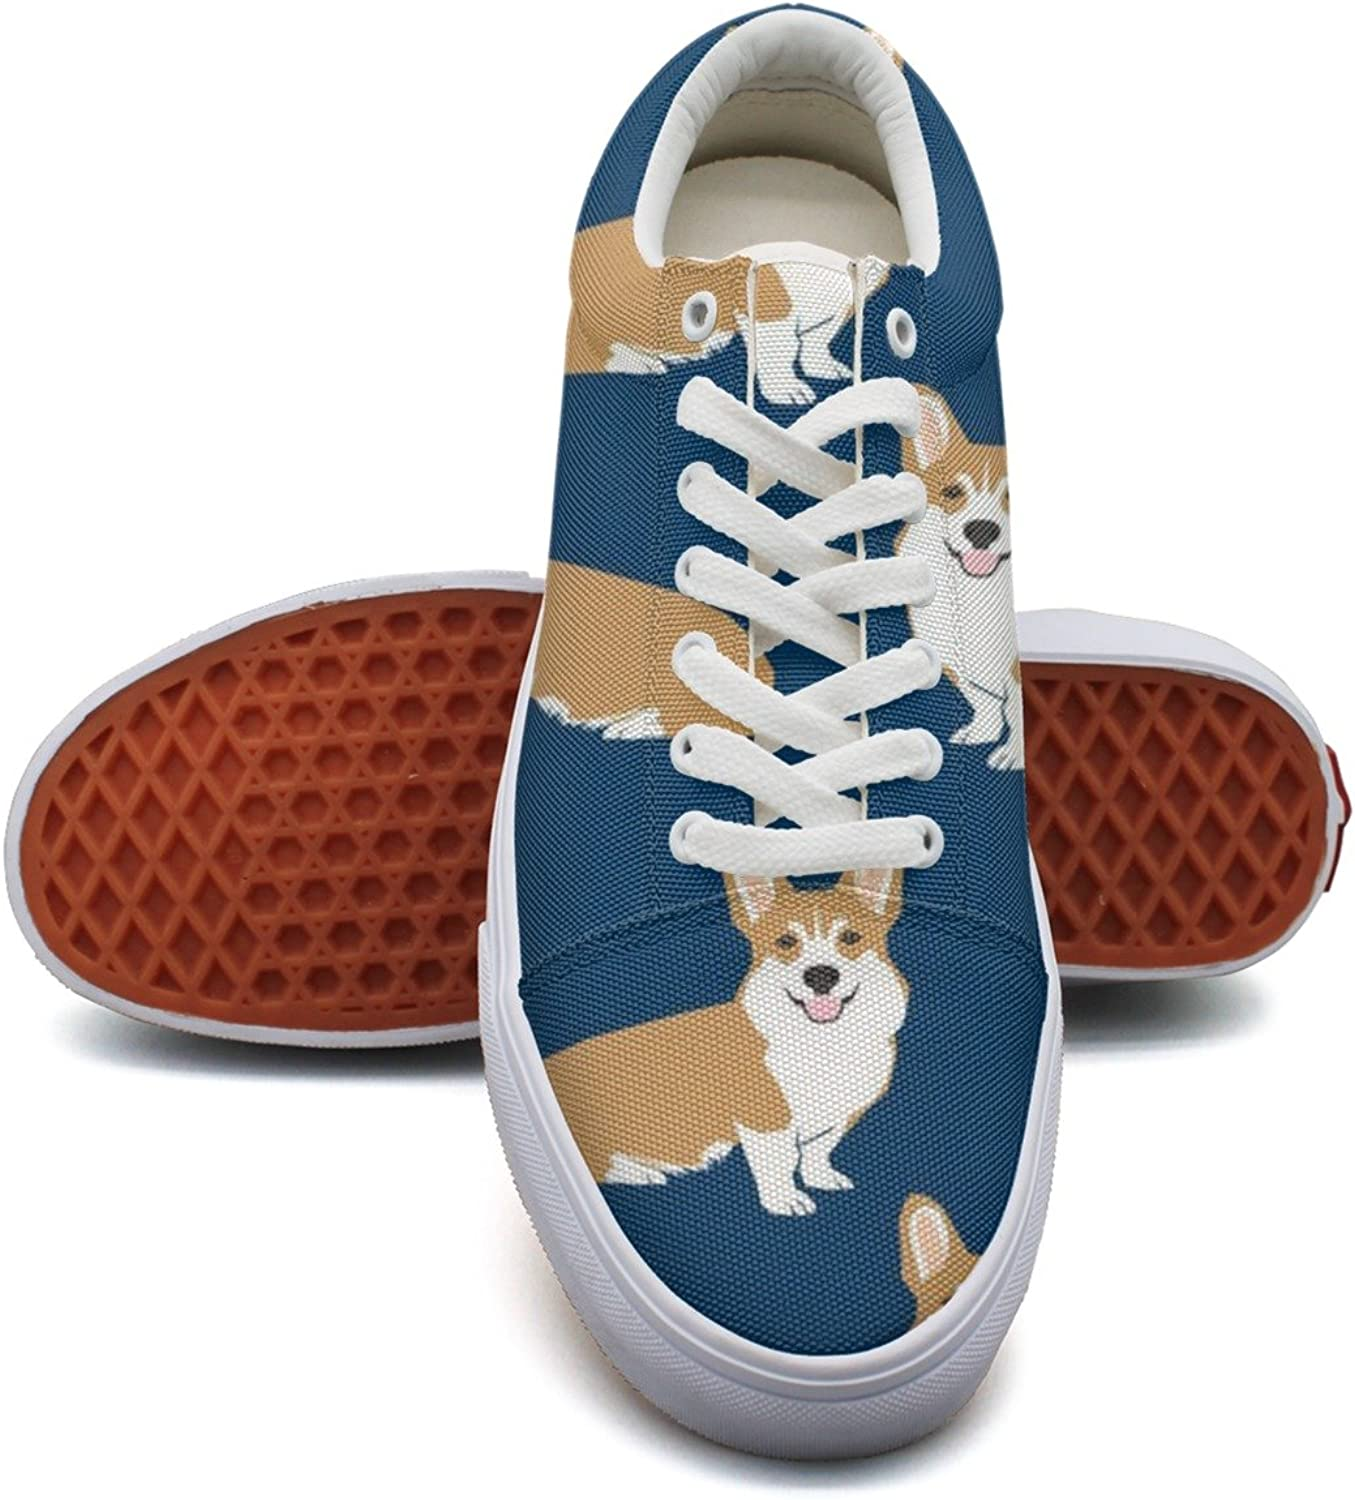 Navy Corgi Dog Pet Puppy Fashion Canvas Sneakers shoes For Womns 3D Printed Low Top shoes